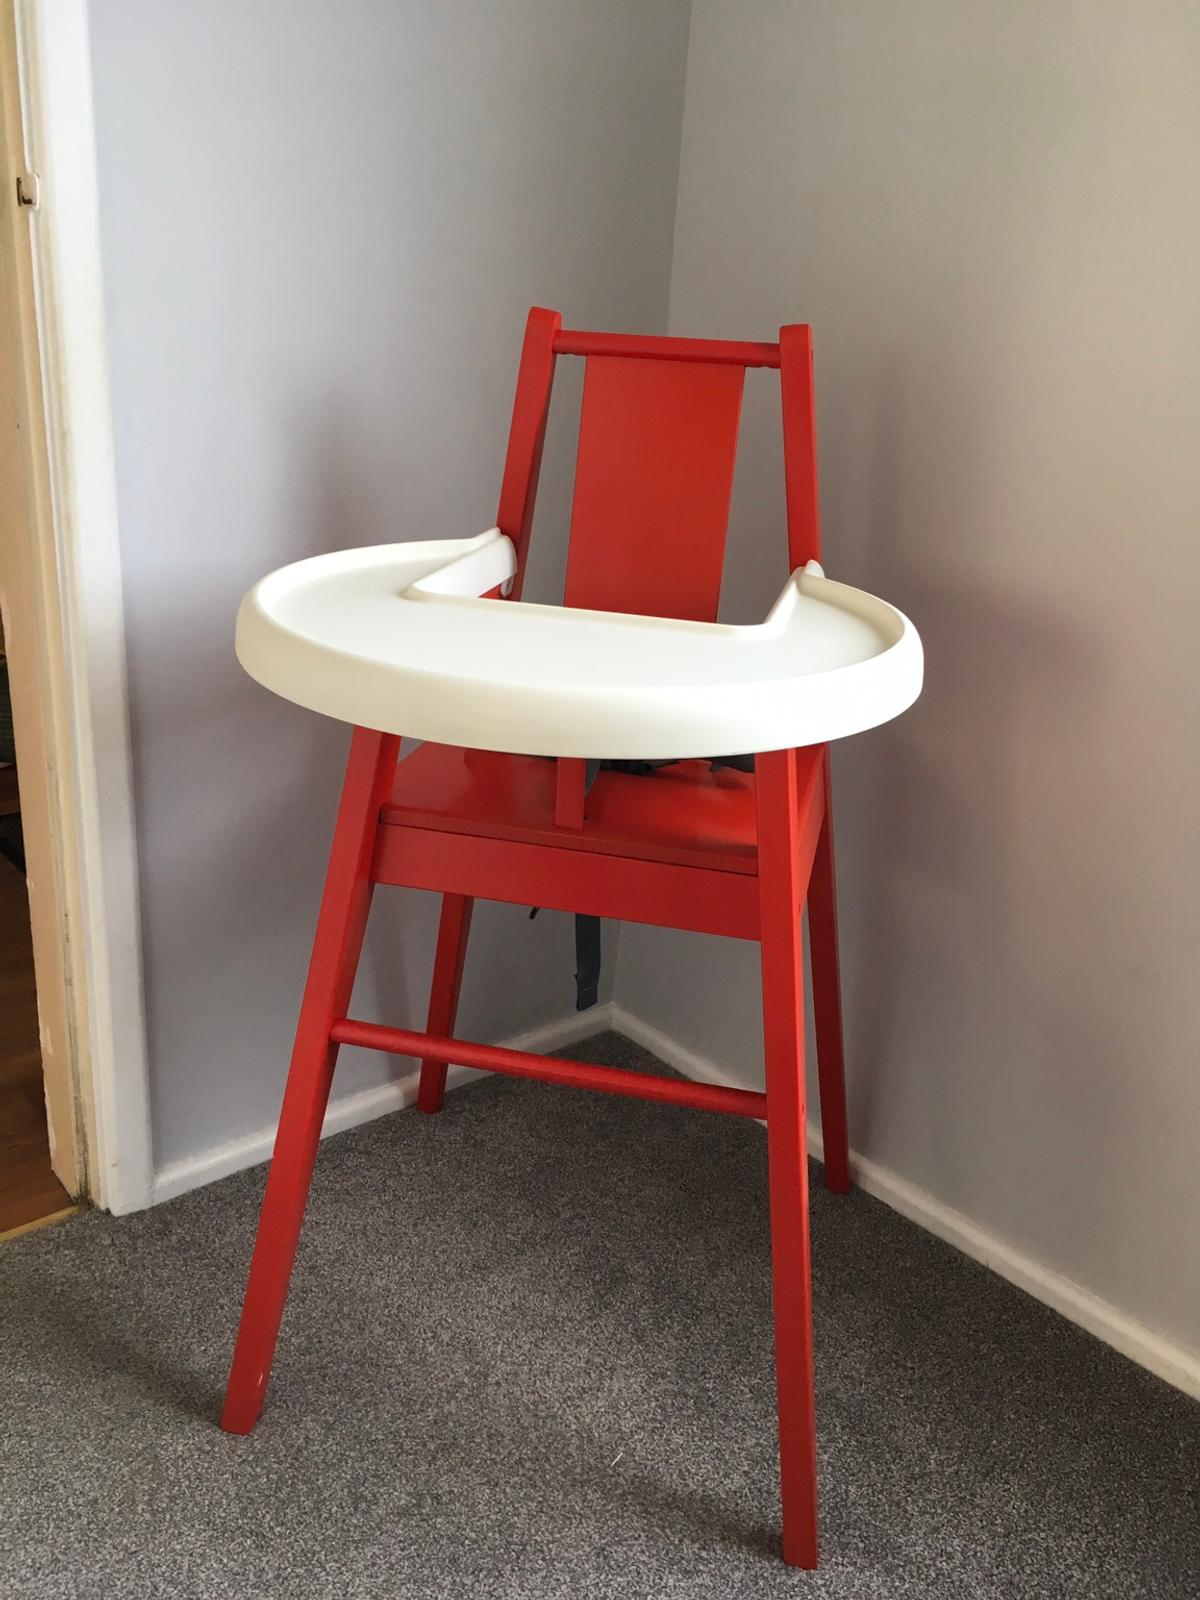 Ikea High Chair Red Wooden In North Cave For 10 00 For Sale Shpock